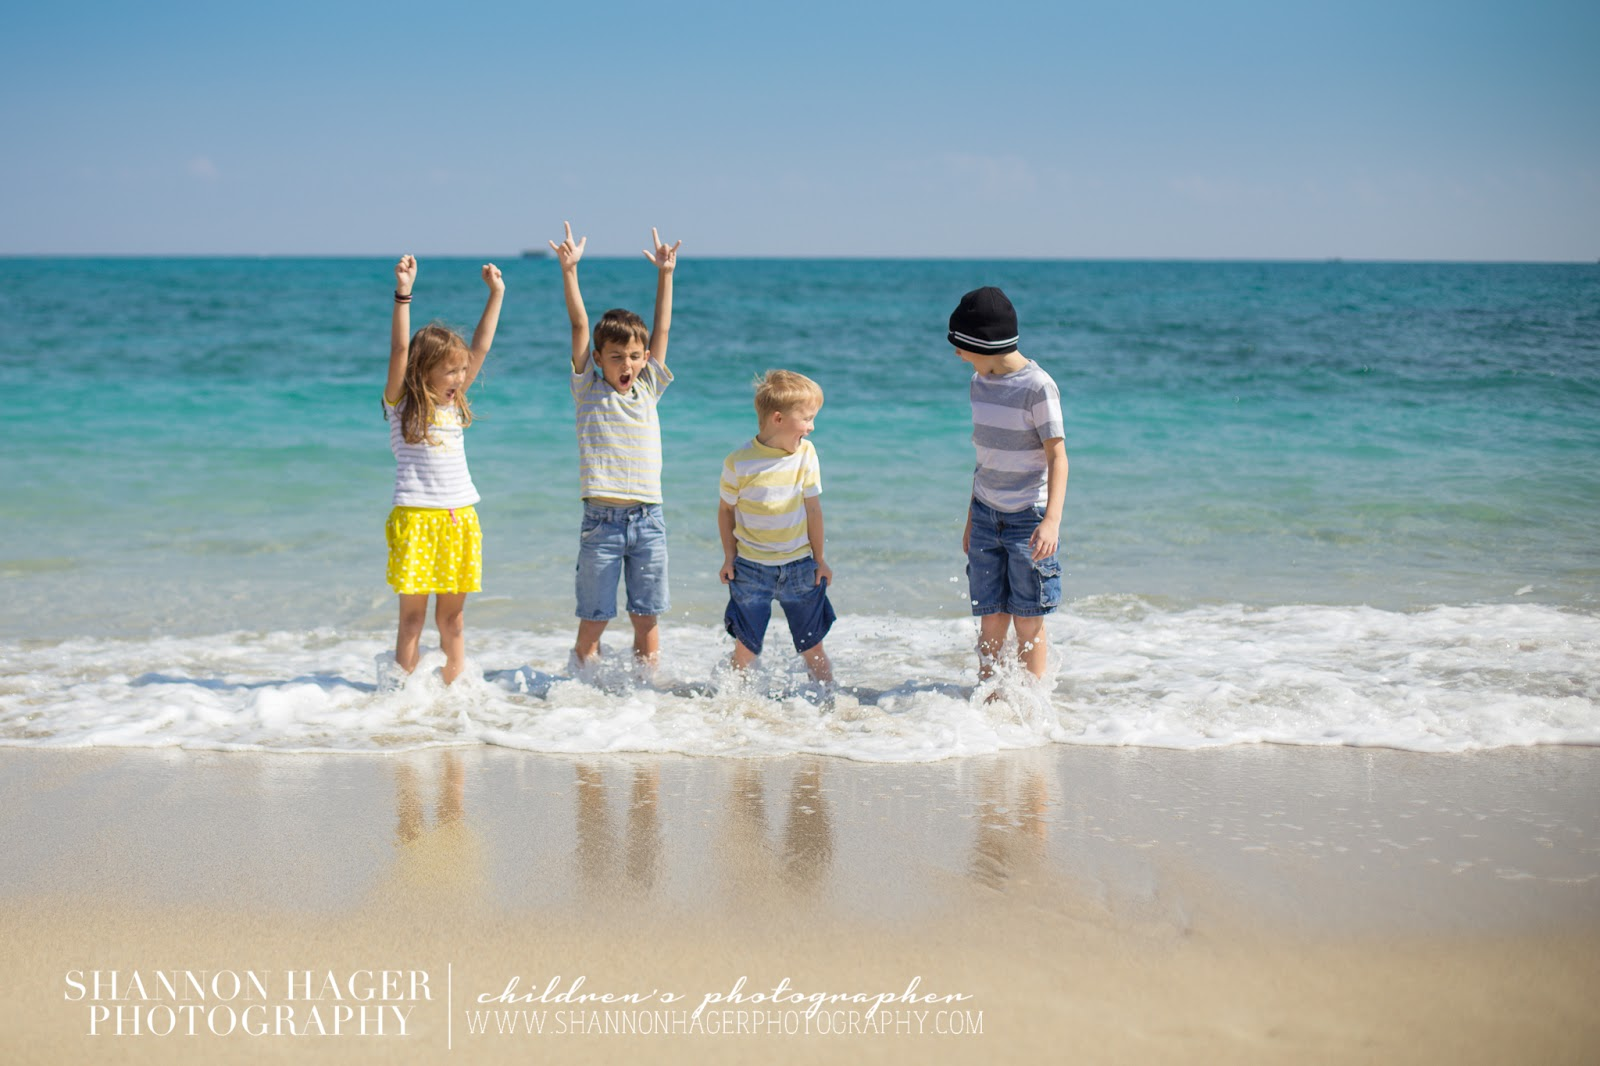 Children's Photography by Shannon Hager Photography, Okinawa